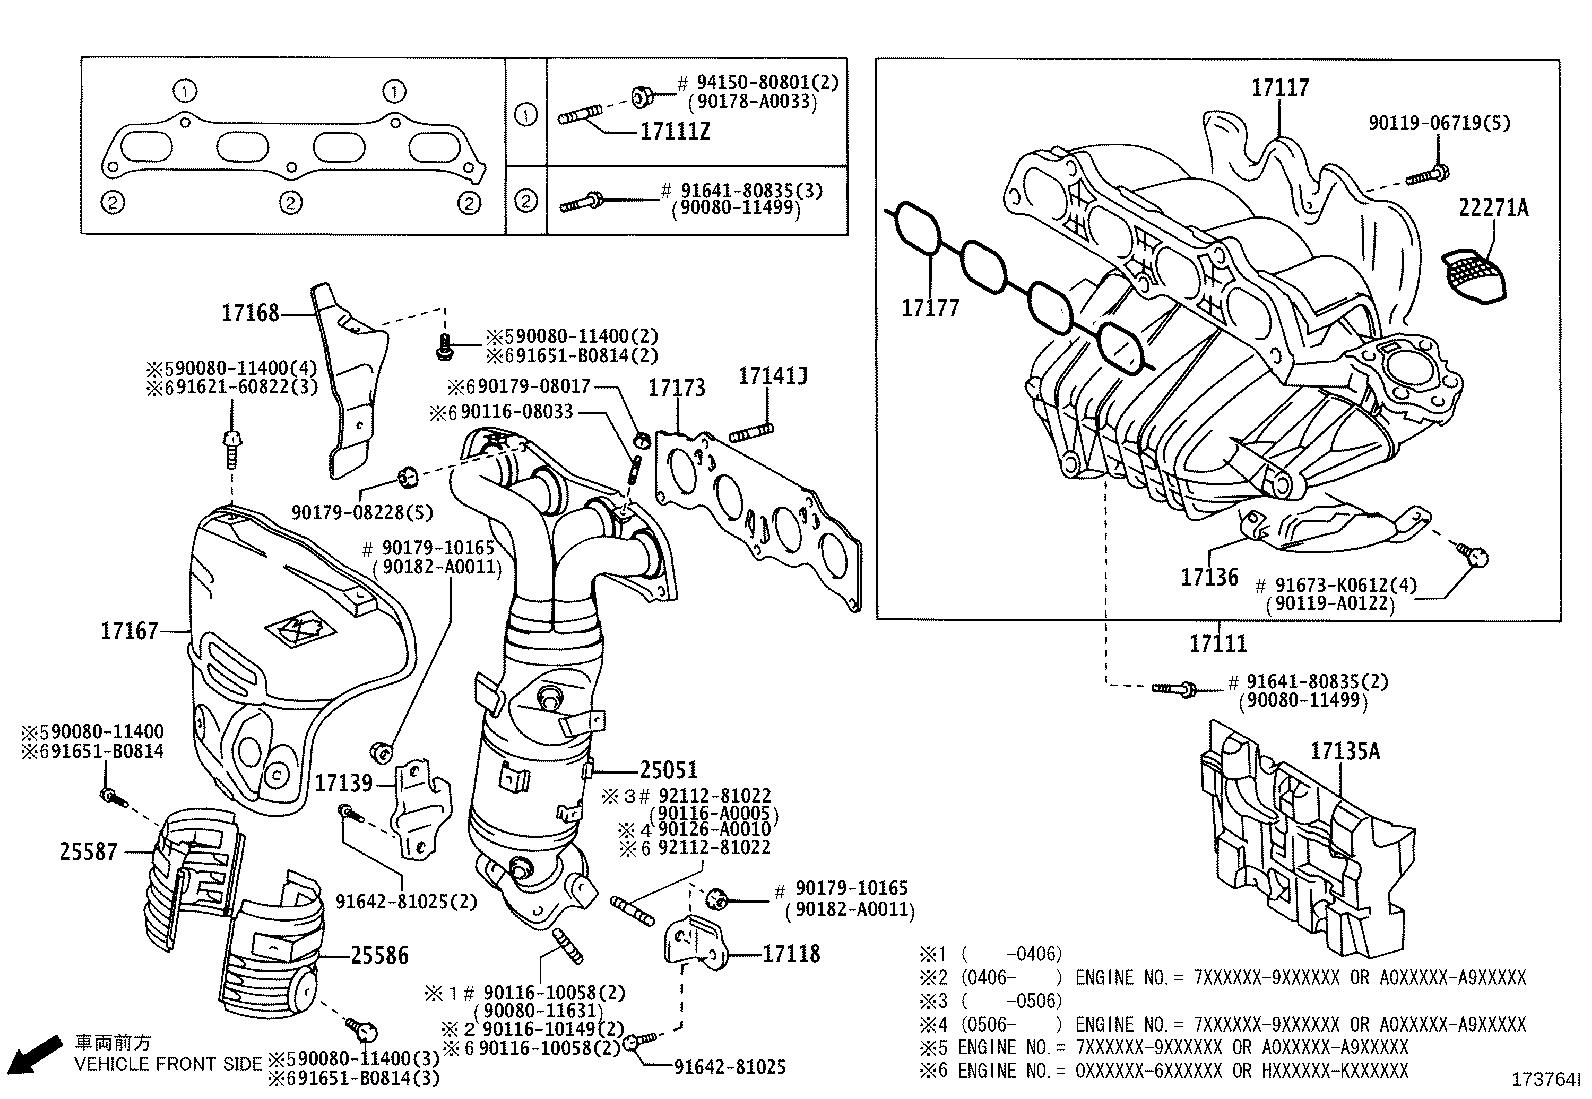 Toyota Solara Catalytic Converter With Integrated